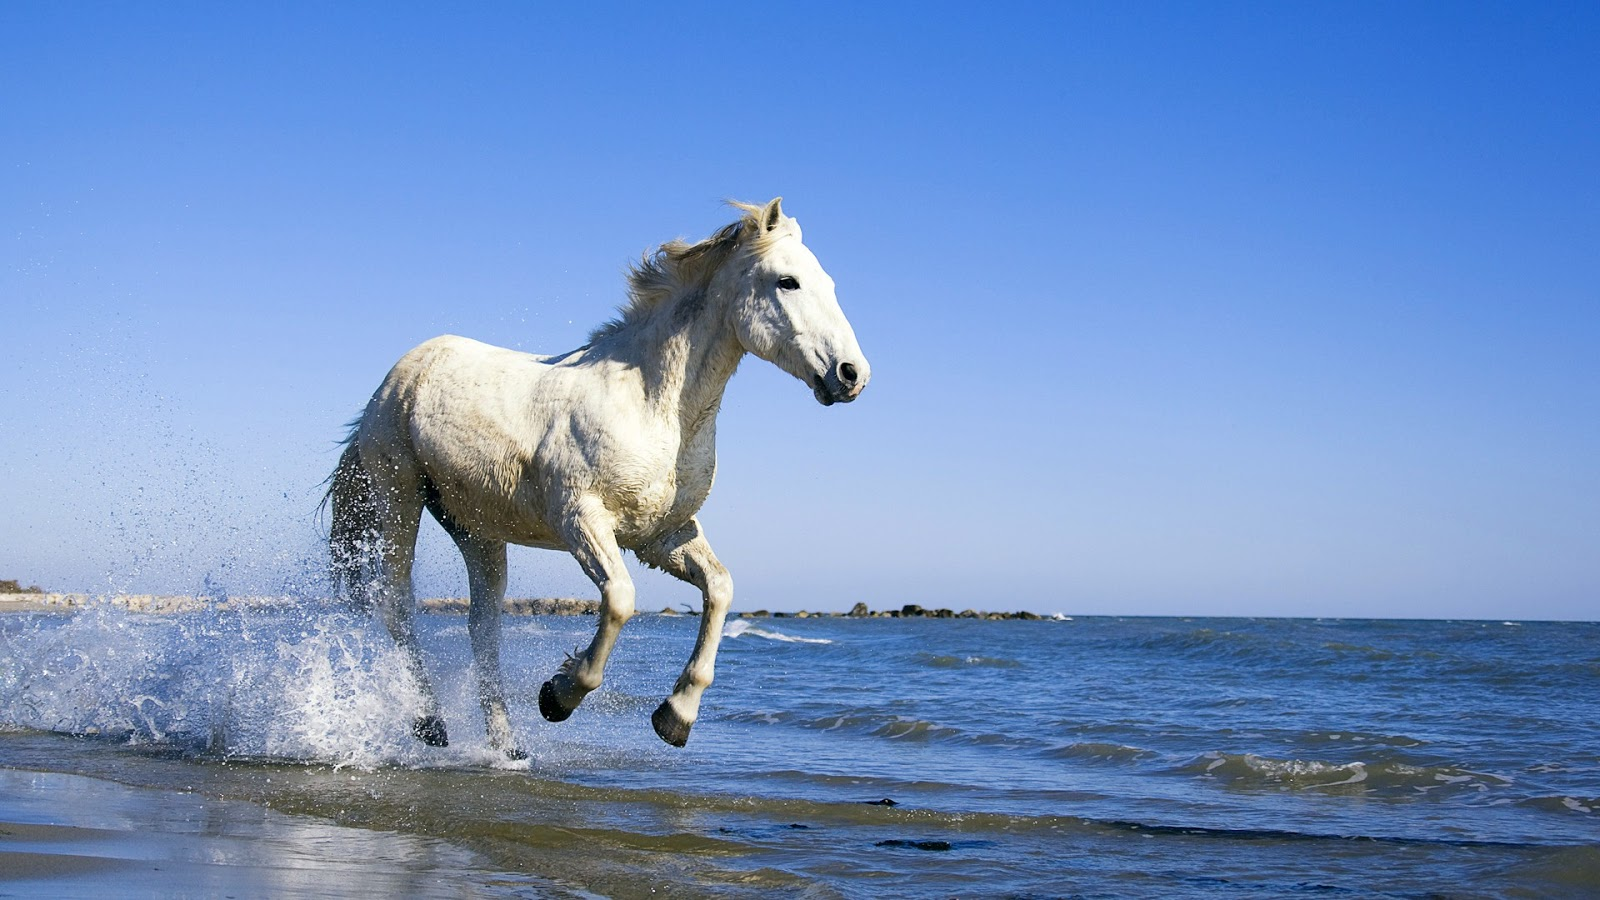 white horse beach jewish single women Download sexy woman horse images and photos over 1,152 sexy woman horse pictures to choose from, with no signup needed download in under 30 seconds.